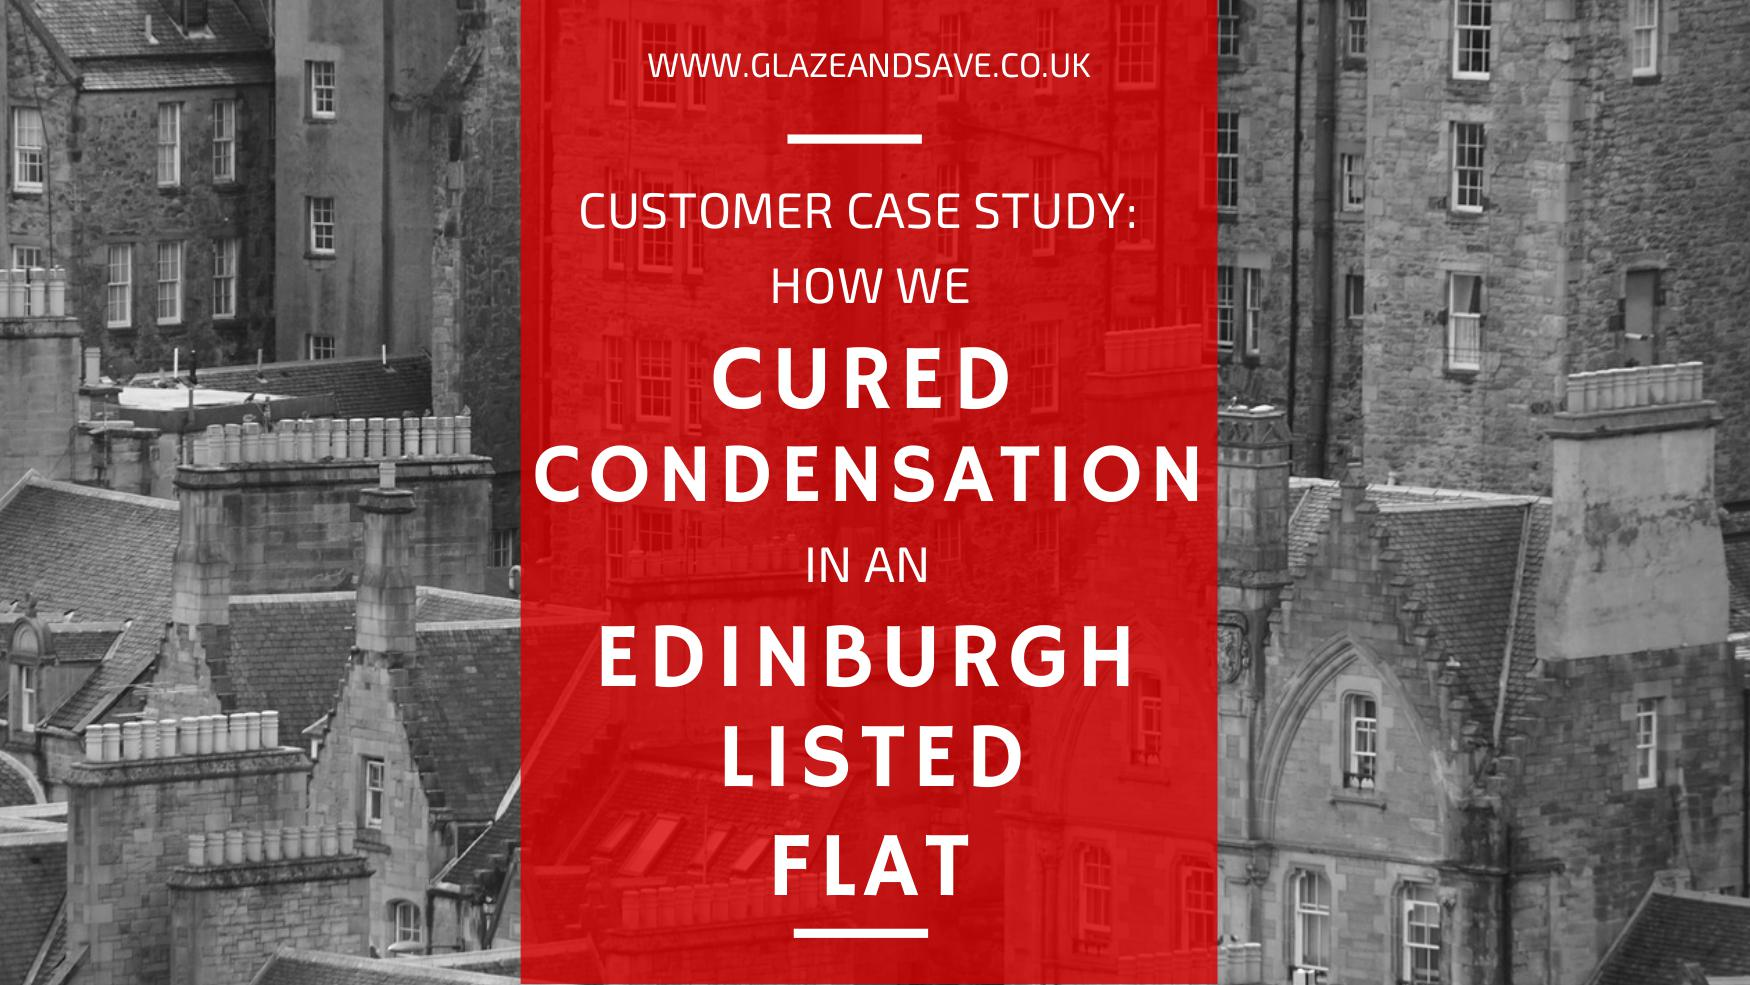 How we cured condensation in an Edinburgh Listed flat by Glaze & Save, bespoke magnetic secondary glazing and draught proofing based in Perth UK.